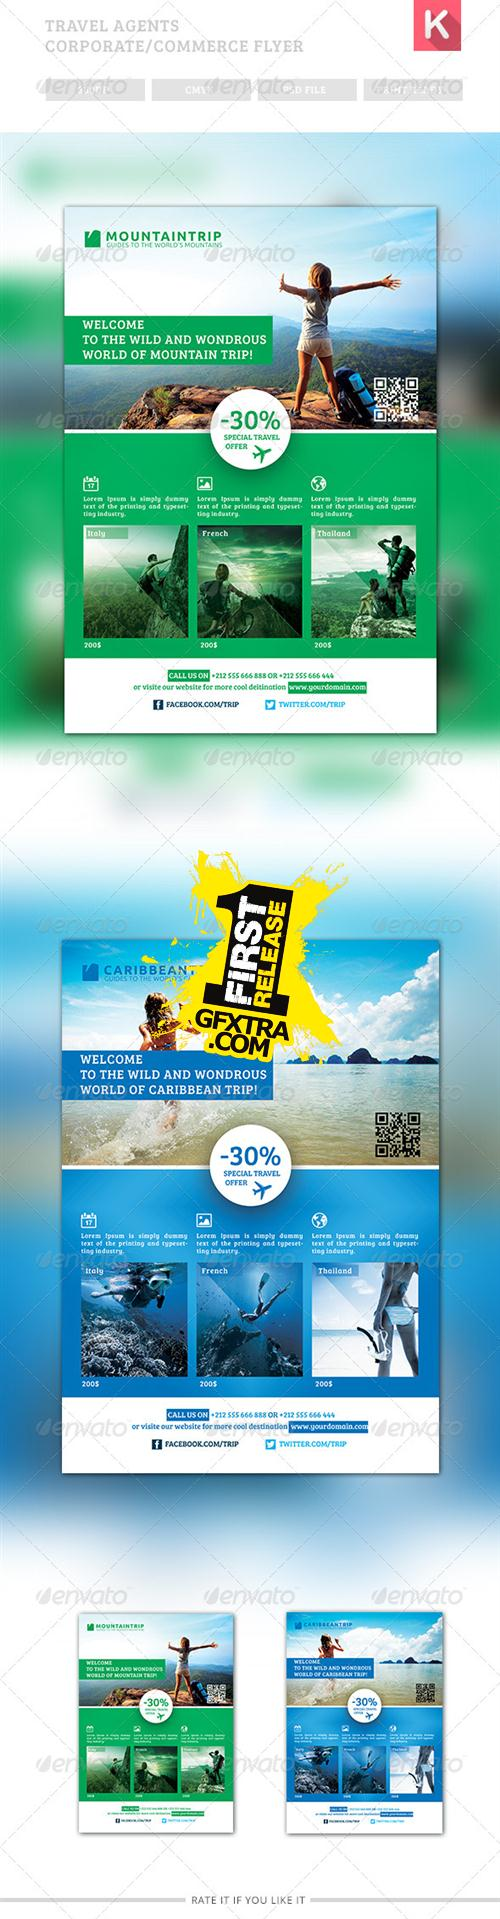 GraphicRiver - Travel Agents Corporate / Commerce Flyer